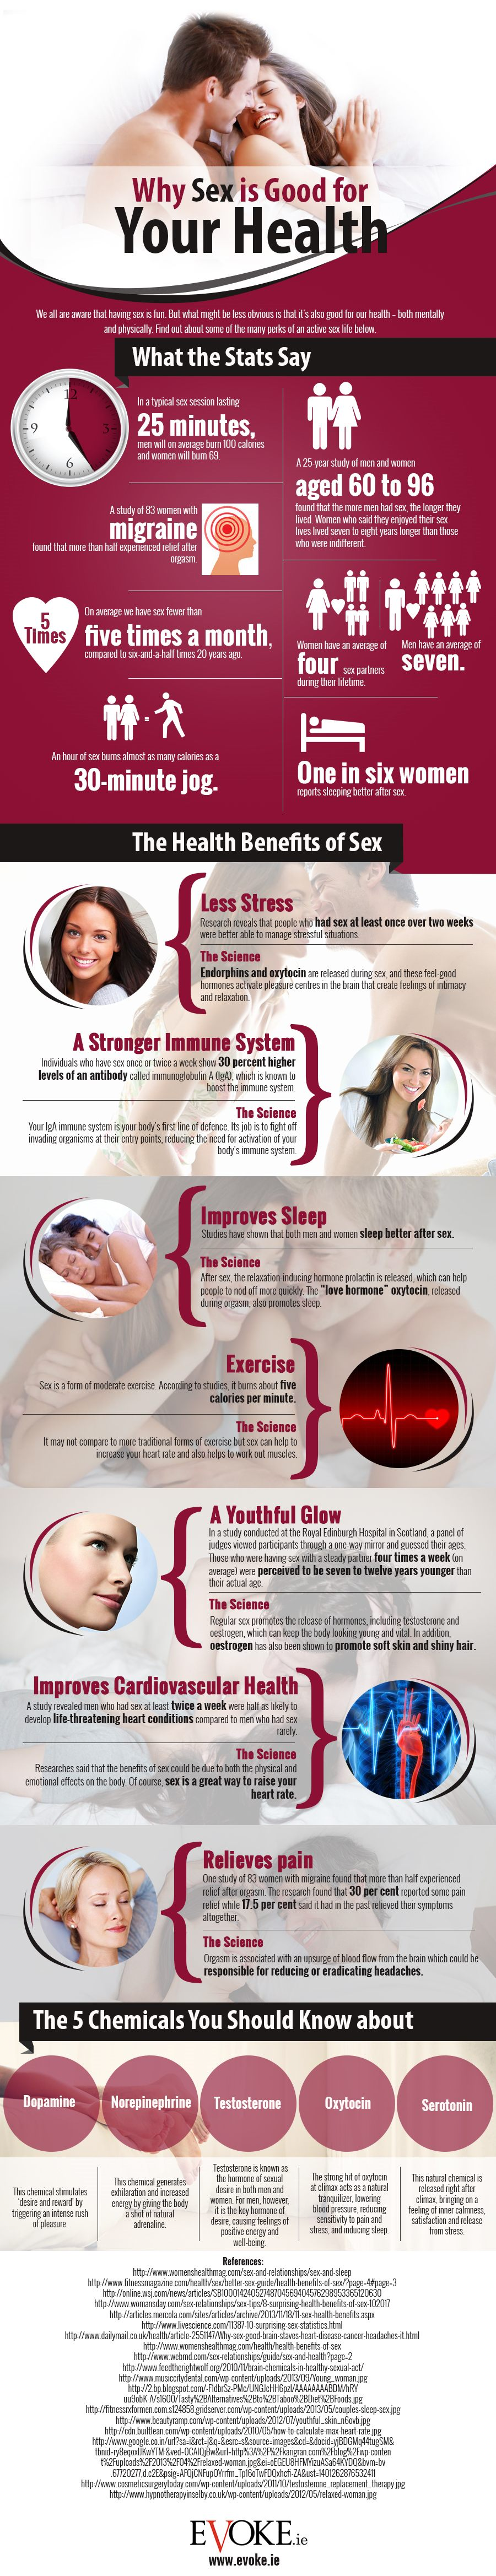 why sex is good for your health infographic